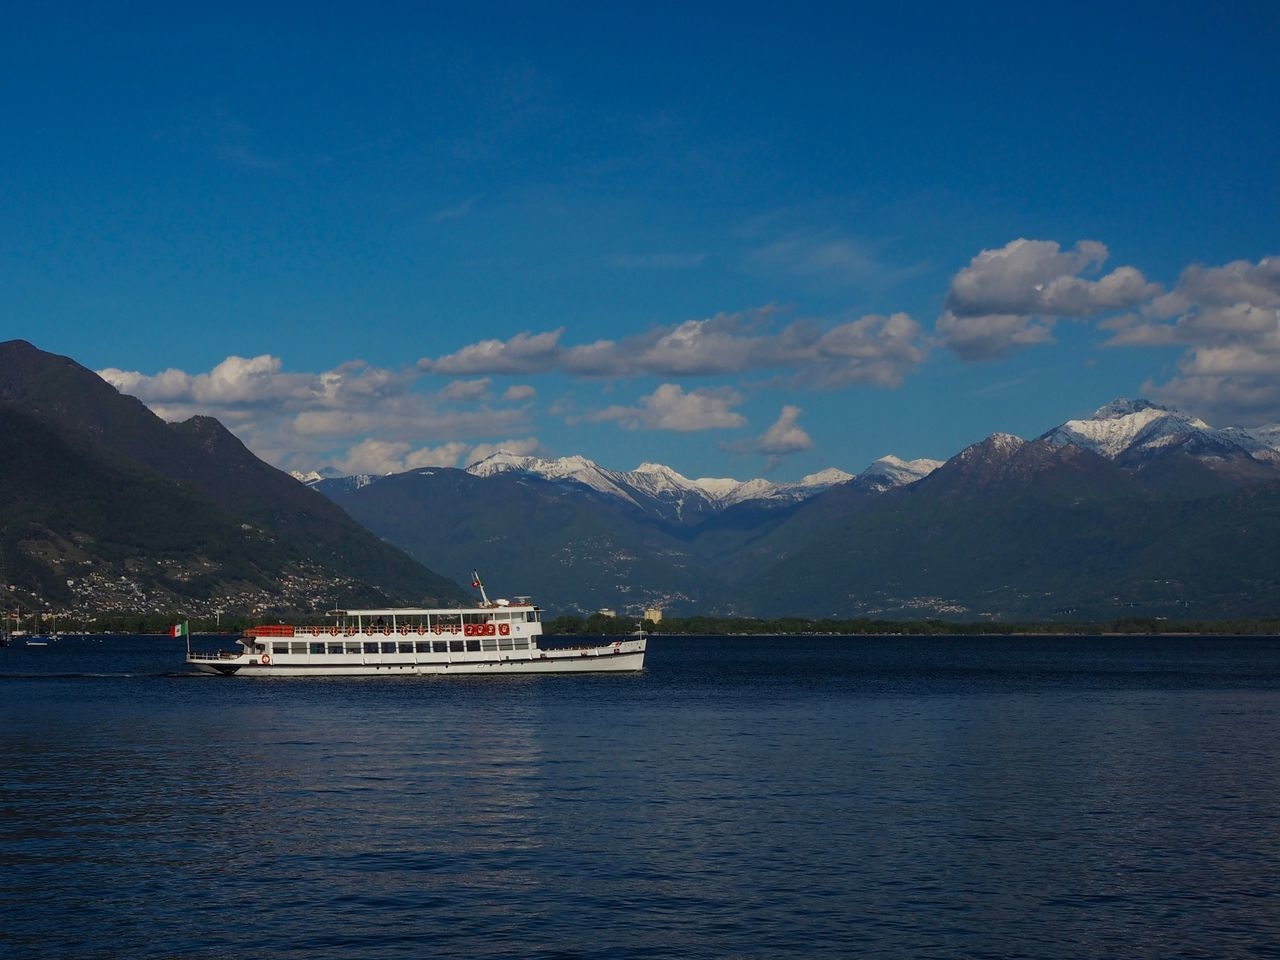 mountain, cloud - sky, sky, nature, scenics, water, beauty in nature, mountain range, transportation, nautical vessel, day, tranquility, outdoors, waterfront, mode of transport, tranquil scene, no people, lake